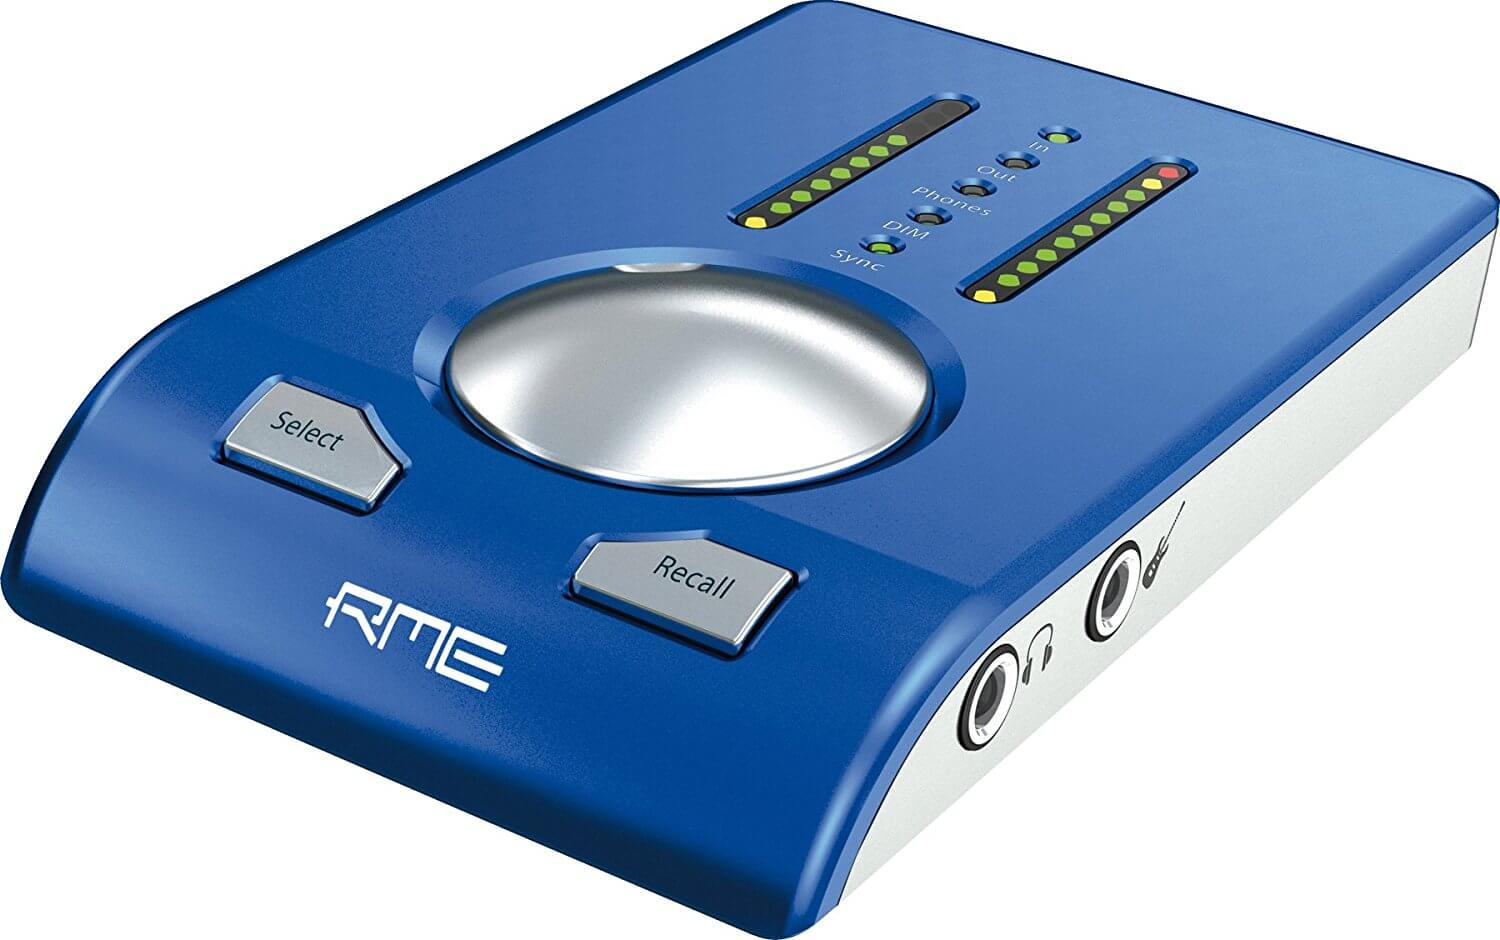 RME Babyface - Professional Sound Card With Tons Of Features